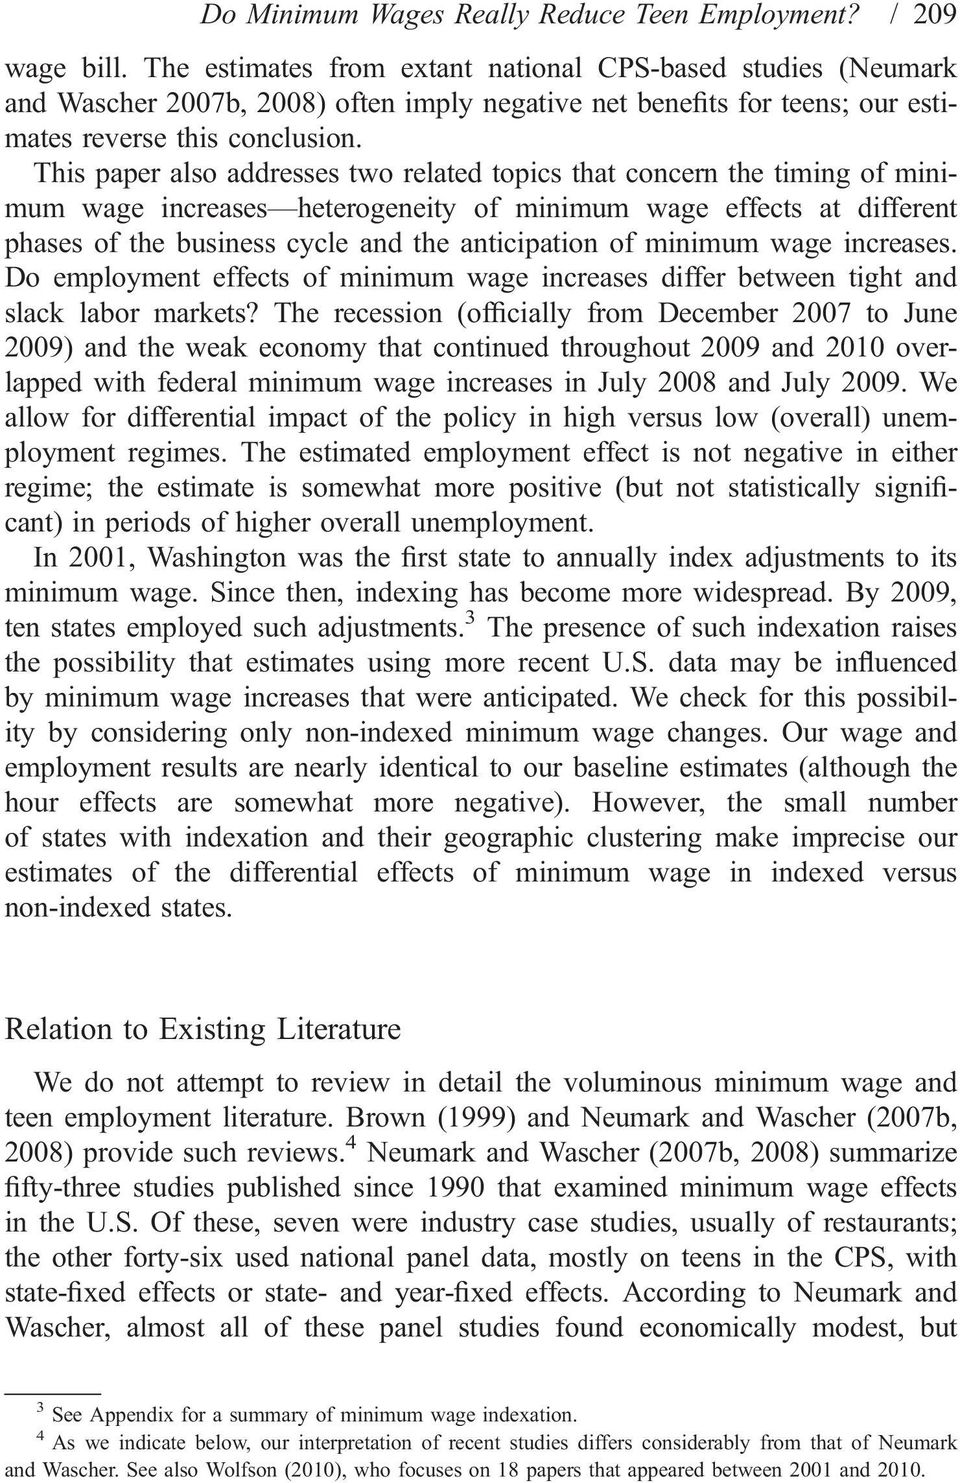 This paper also addresses two related topics that concern the timing of minimum wage increases heterogeneity of minimum wage effects at different phases of the business cycle and the anticipation of